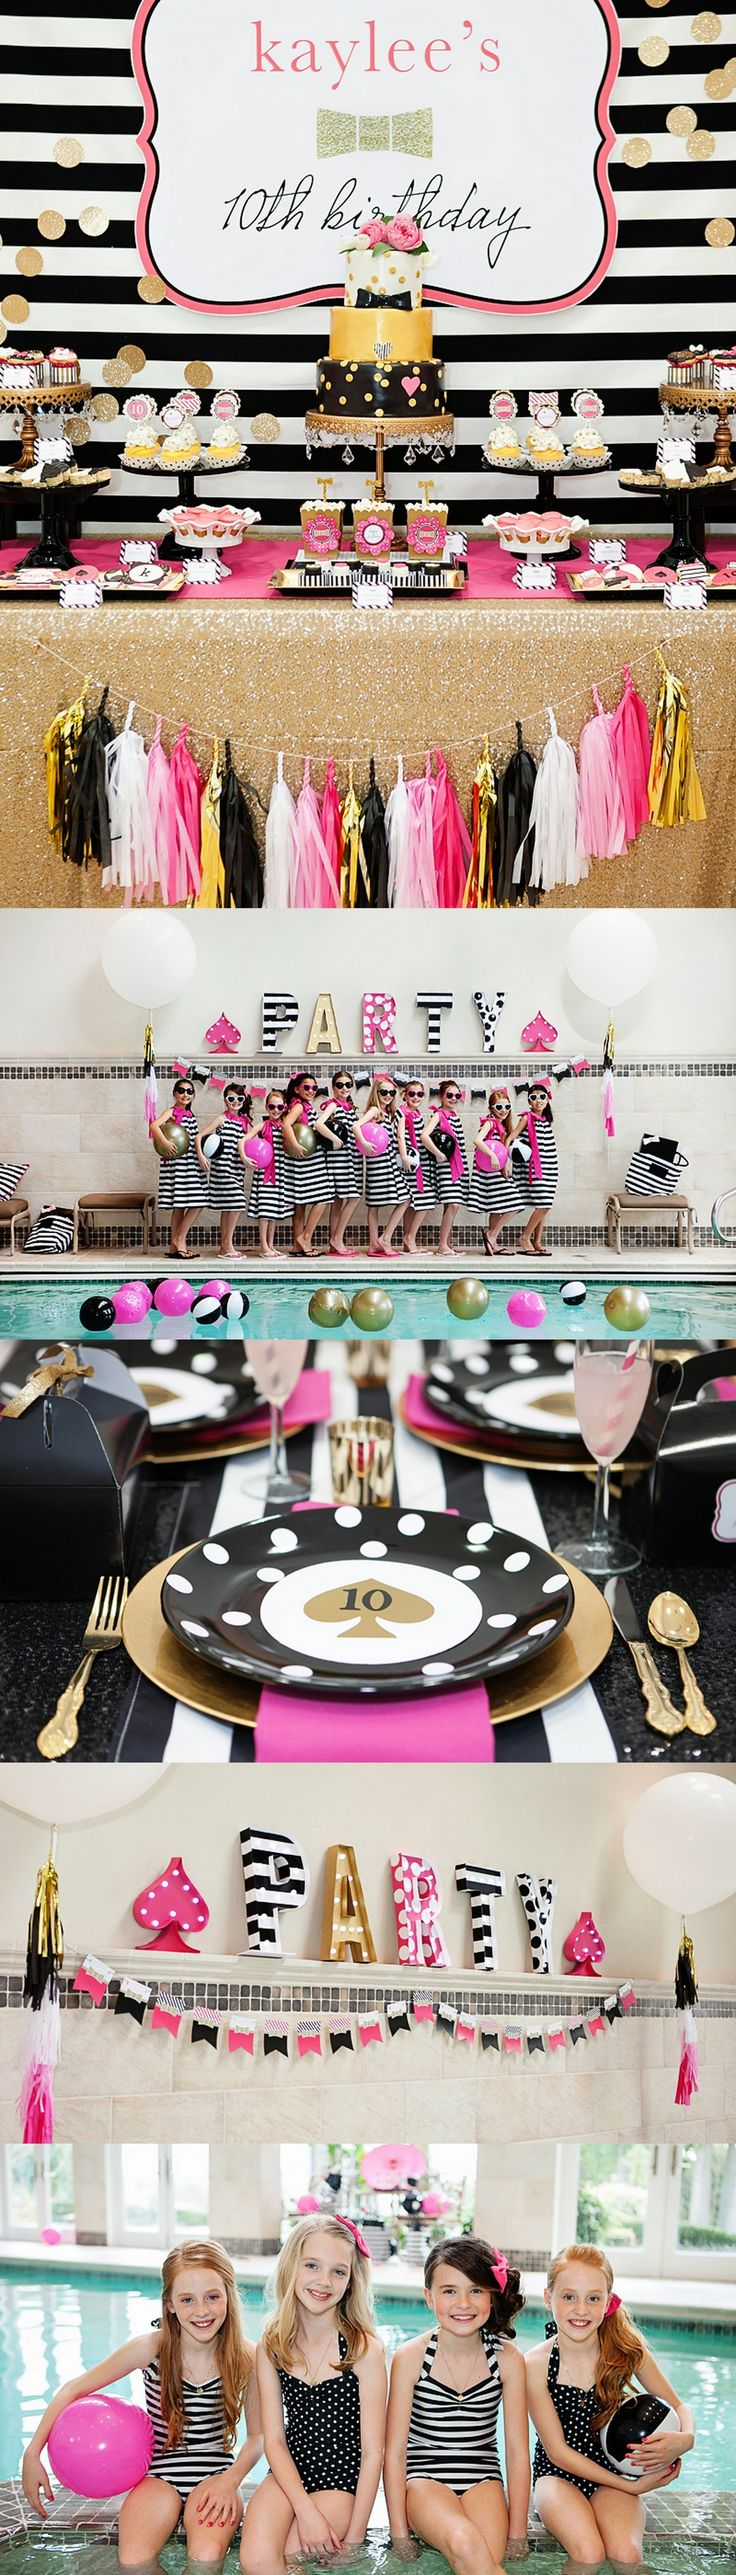 Kate Spade Inspired Party styled by Banner Events | Featured on The TomKat Studio http://www.thetomkatstudio.com/kate-spade-inspired-birthday-party/